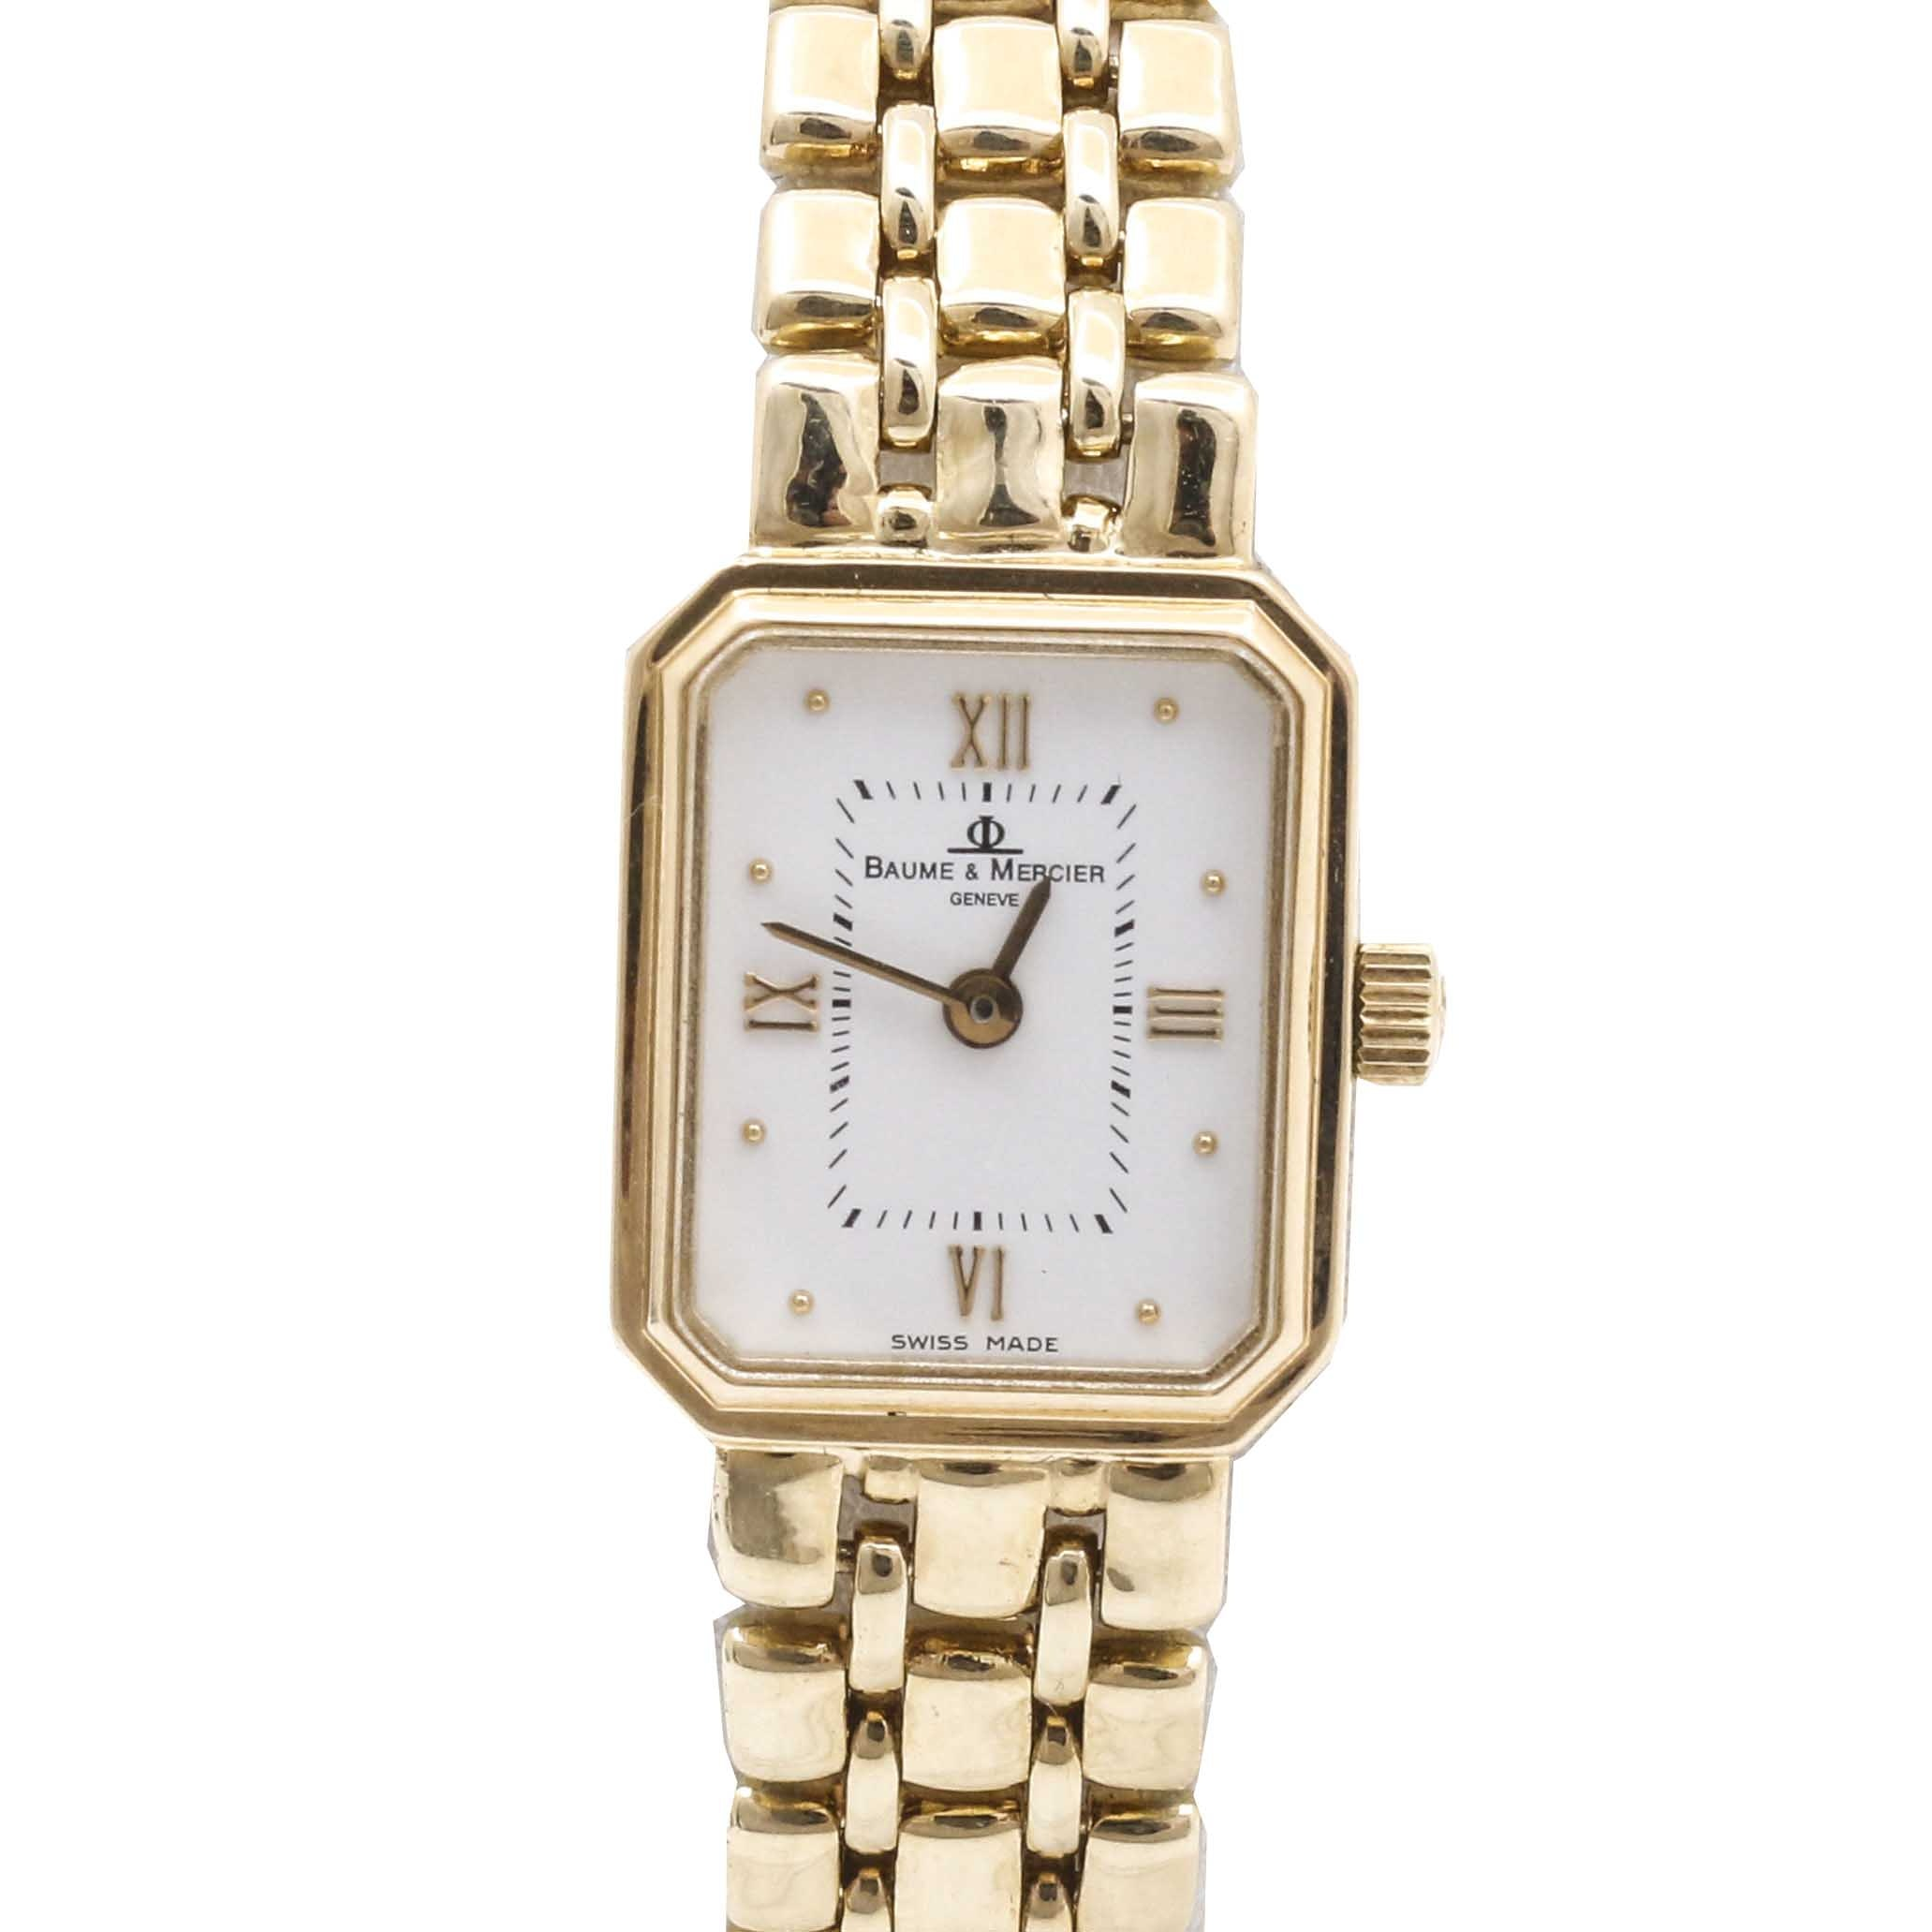 Baum & Mercier 14K Yellow Gold Bracelet Wristwatch